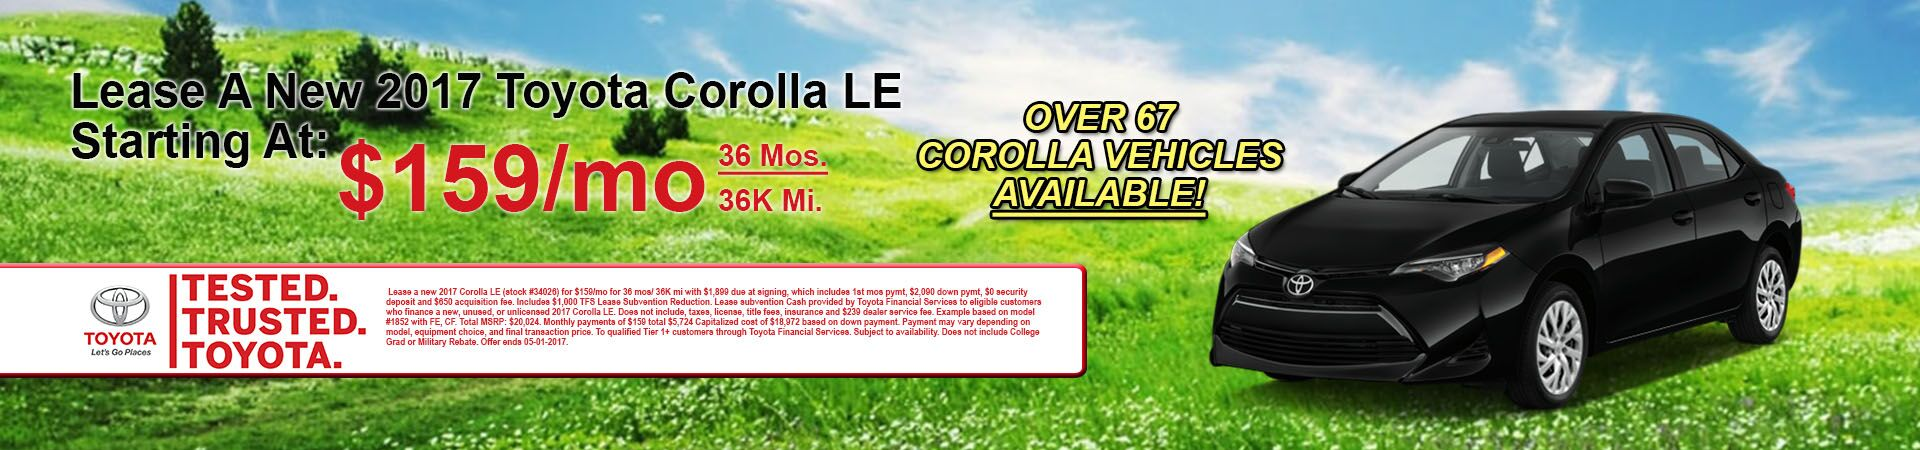 New 2017 Toyota Corolla Specials At Andrew Toyota